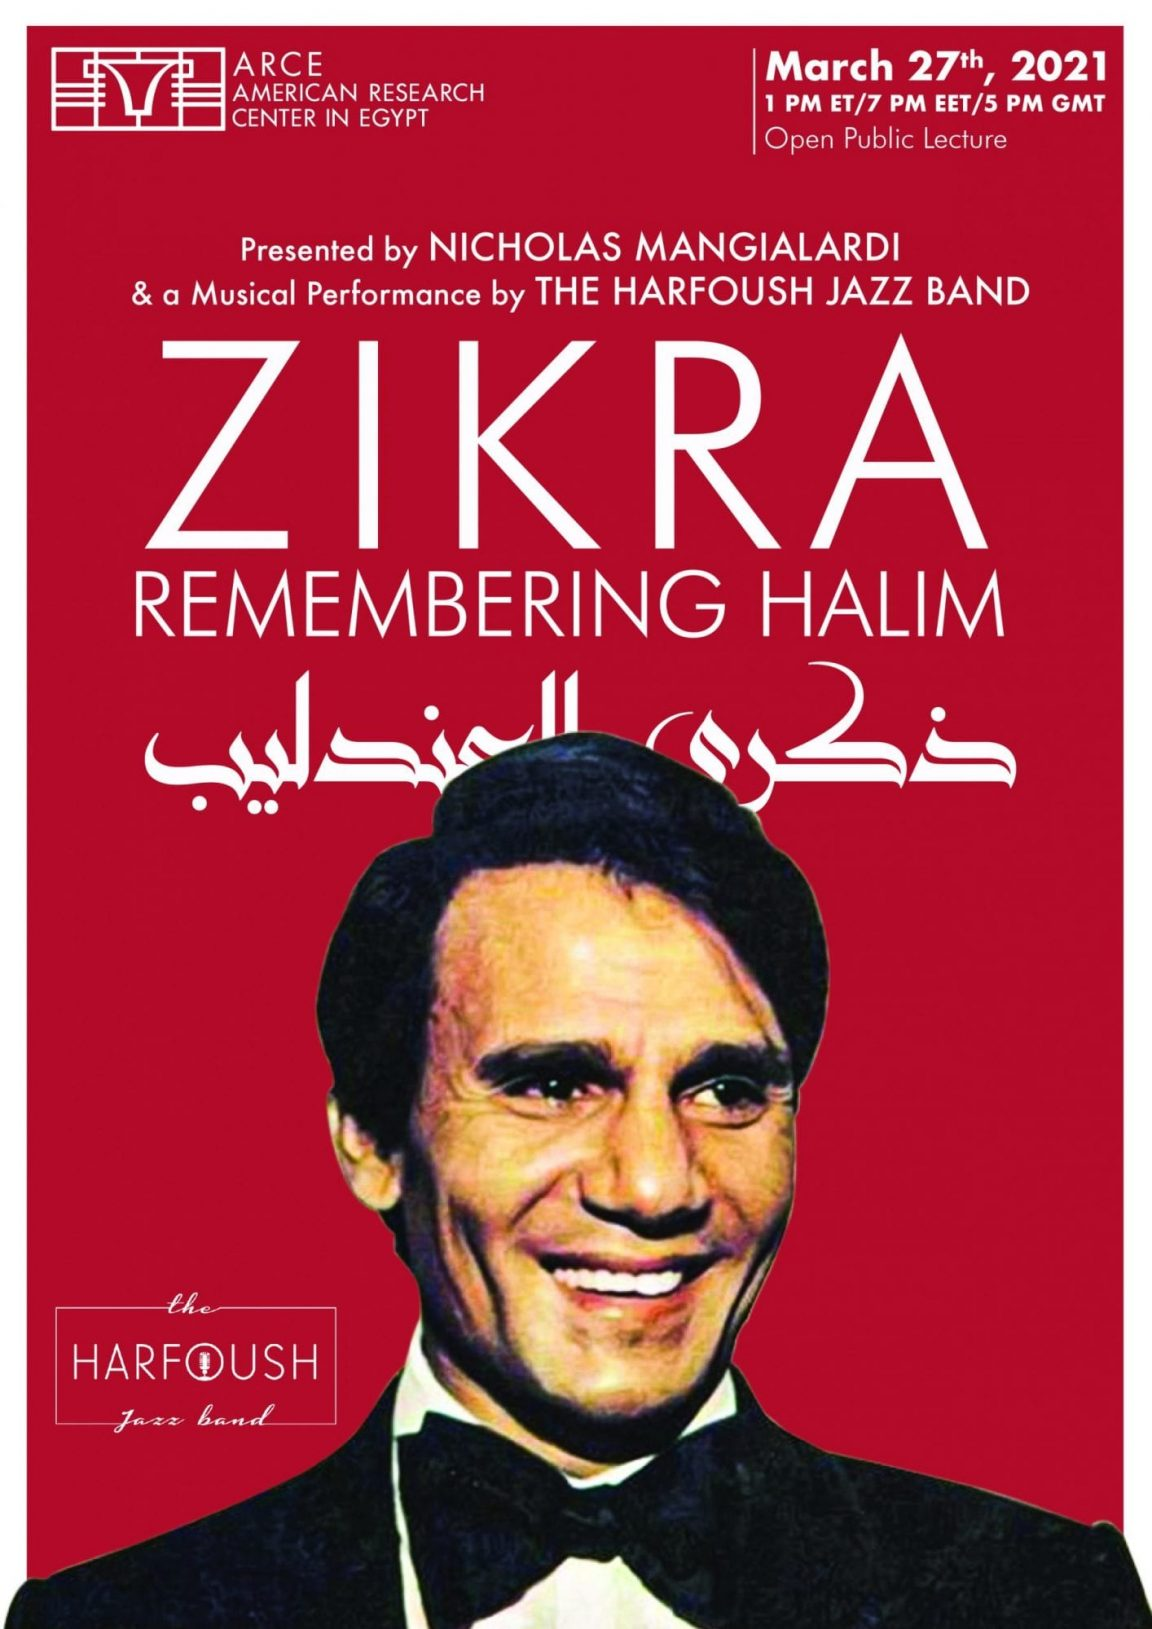 Zikra: Remembering Abd al-Halim Hafiz